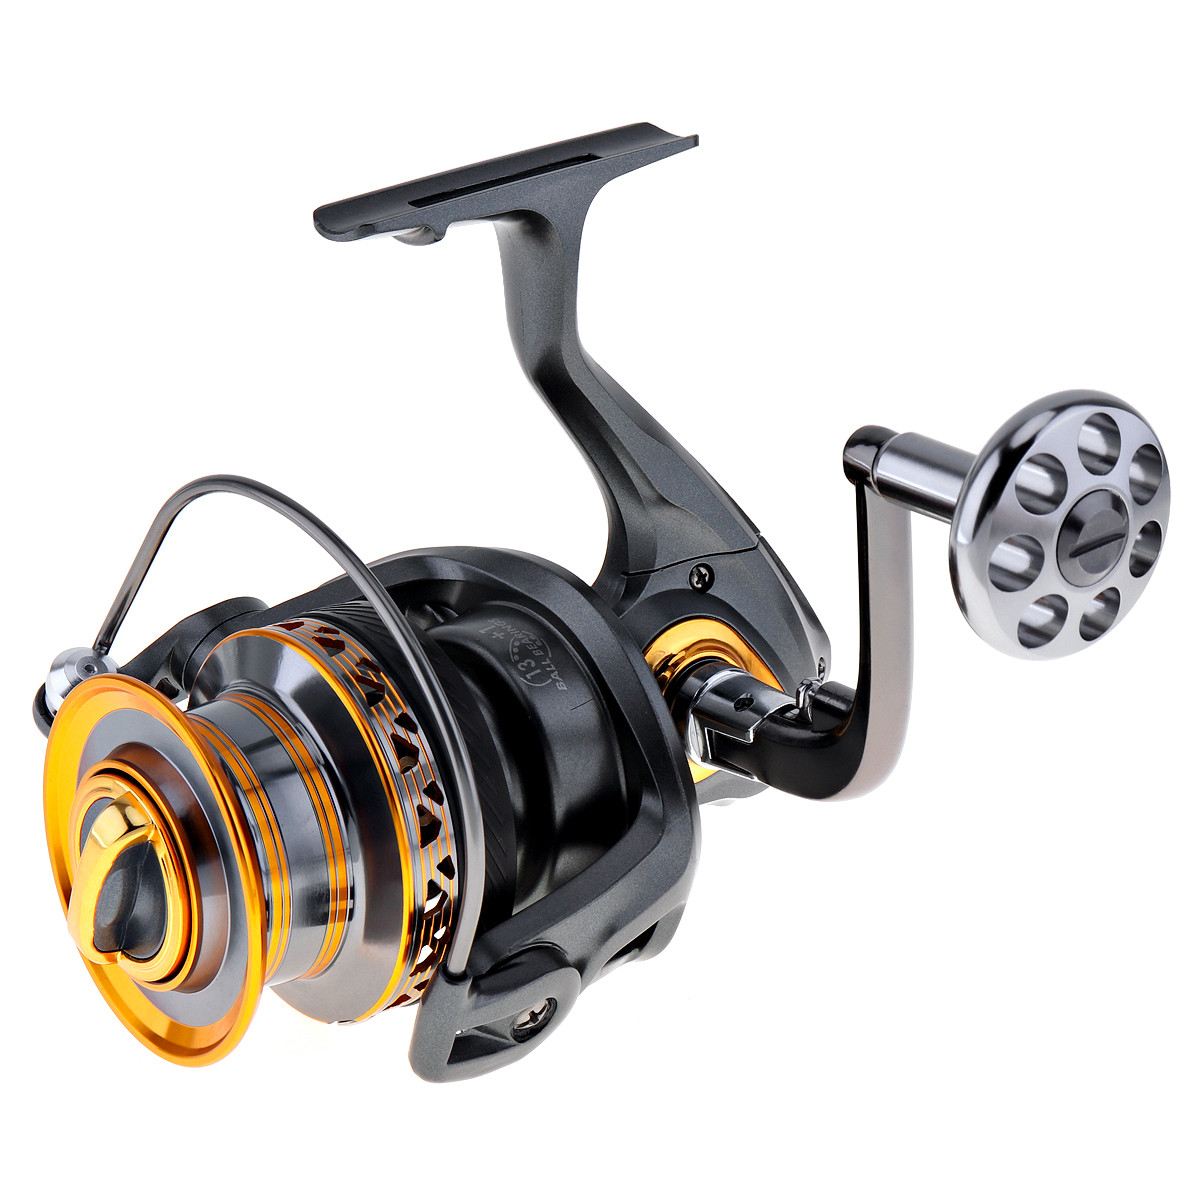 Aluminum Metal Spool Spinning Fishing Reel 6000 7000 Series 13 1 Ball Bearings Left Right Hand